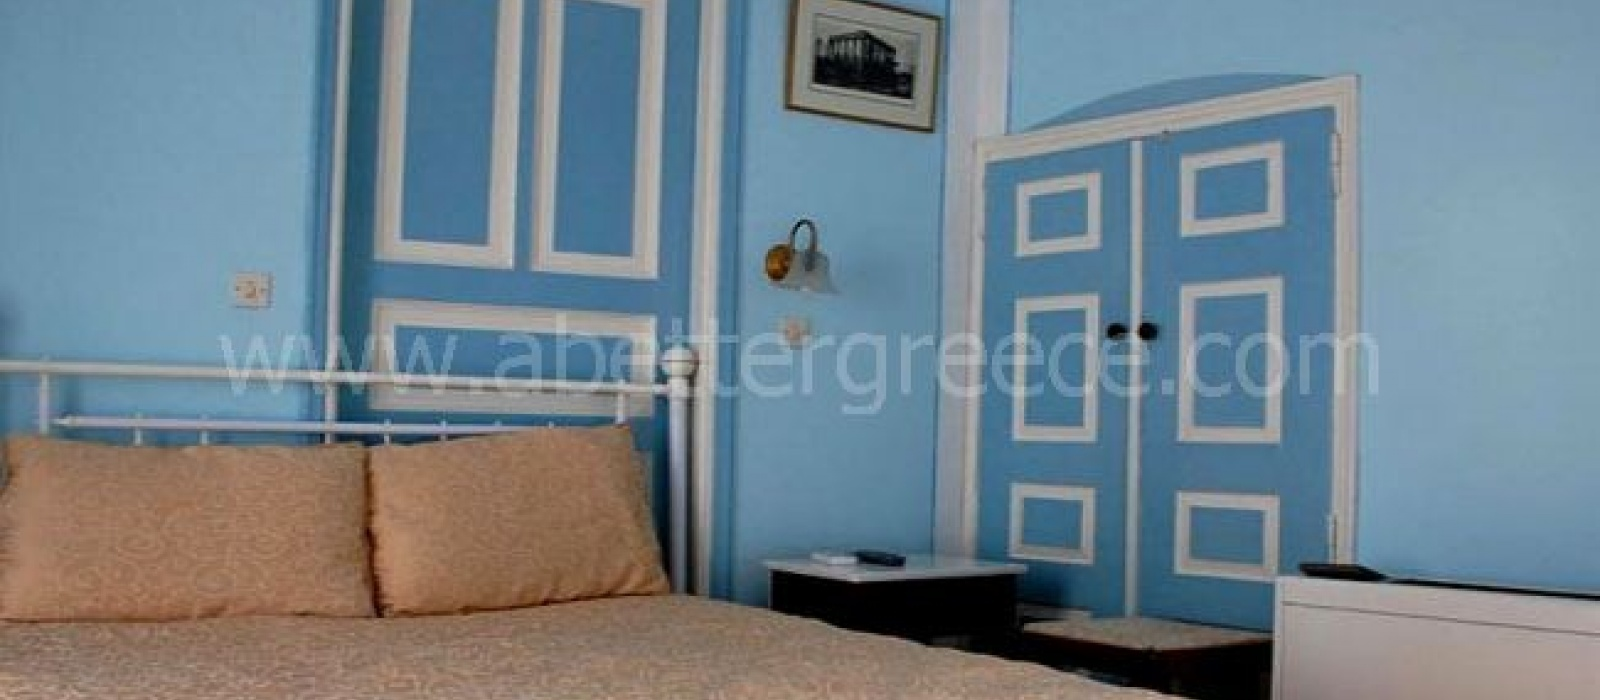 1 Bedrooms, Apartment, Vacation Rental, 1 Bathrooms, Listing ID 1236, Aegina, Greece,